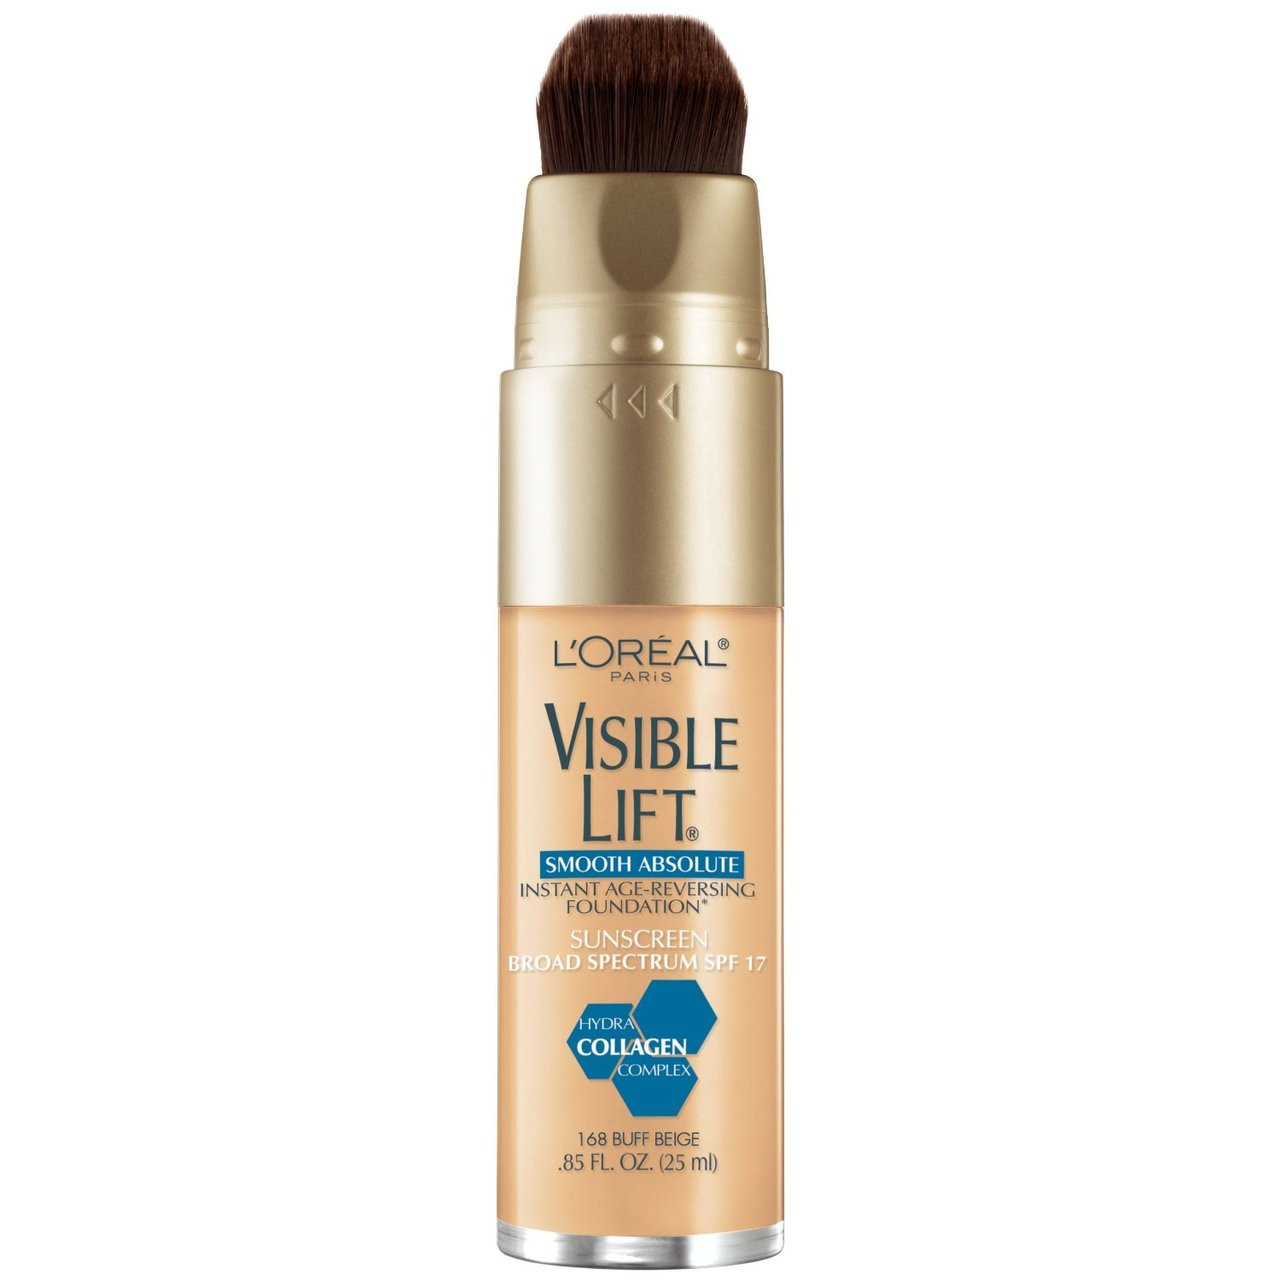 Loreal Visible Lift Smooth Absolute Foundation 168 Buff Beige Htf Nabi Duo Concealer